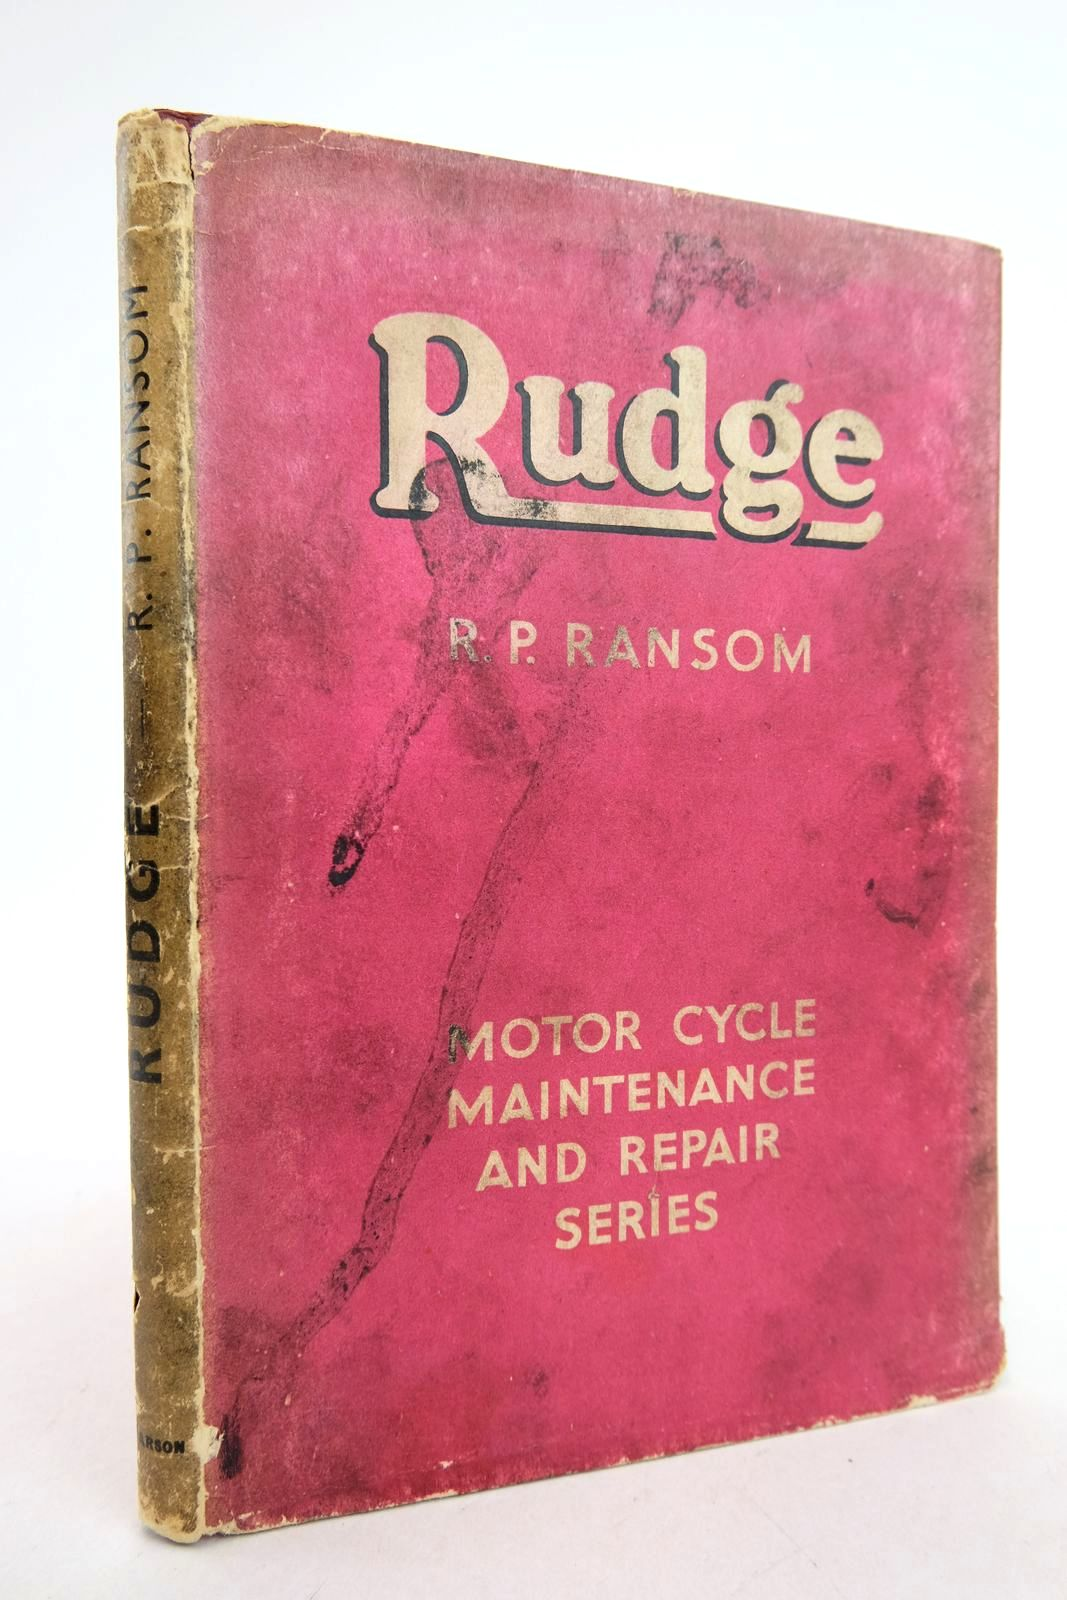 Photo of RUDGE MOTOR CYCLES written by Ransom, R.P. published by C. Arthur Pearson Ltd. (STOCK CODE: 2133277)  for sale by Stella & Rose's Books